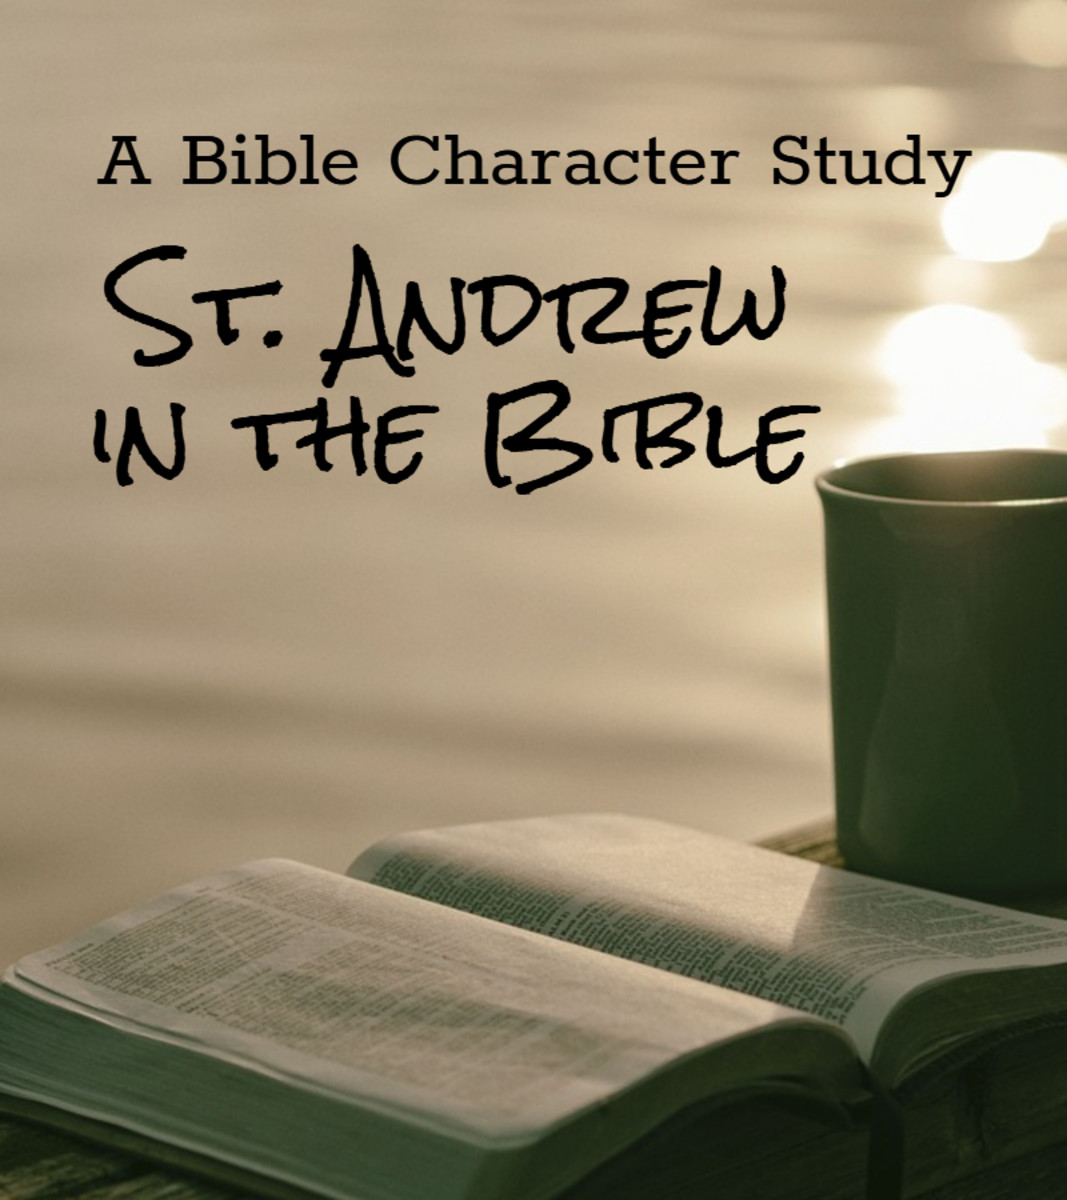 a-bible-character-study-st-andrew